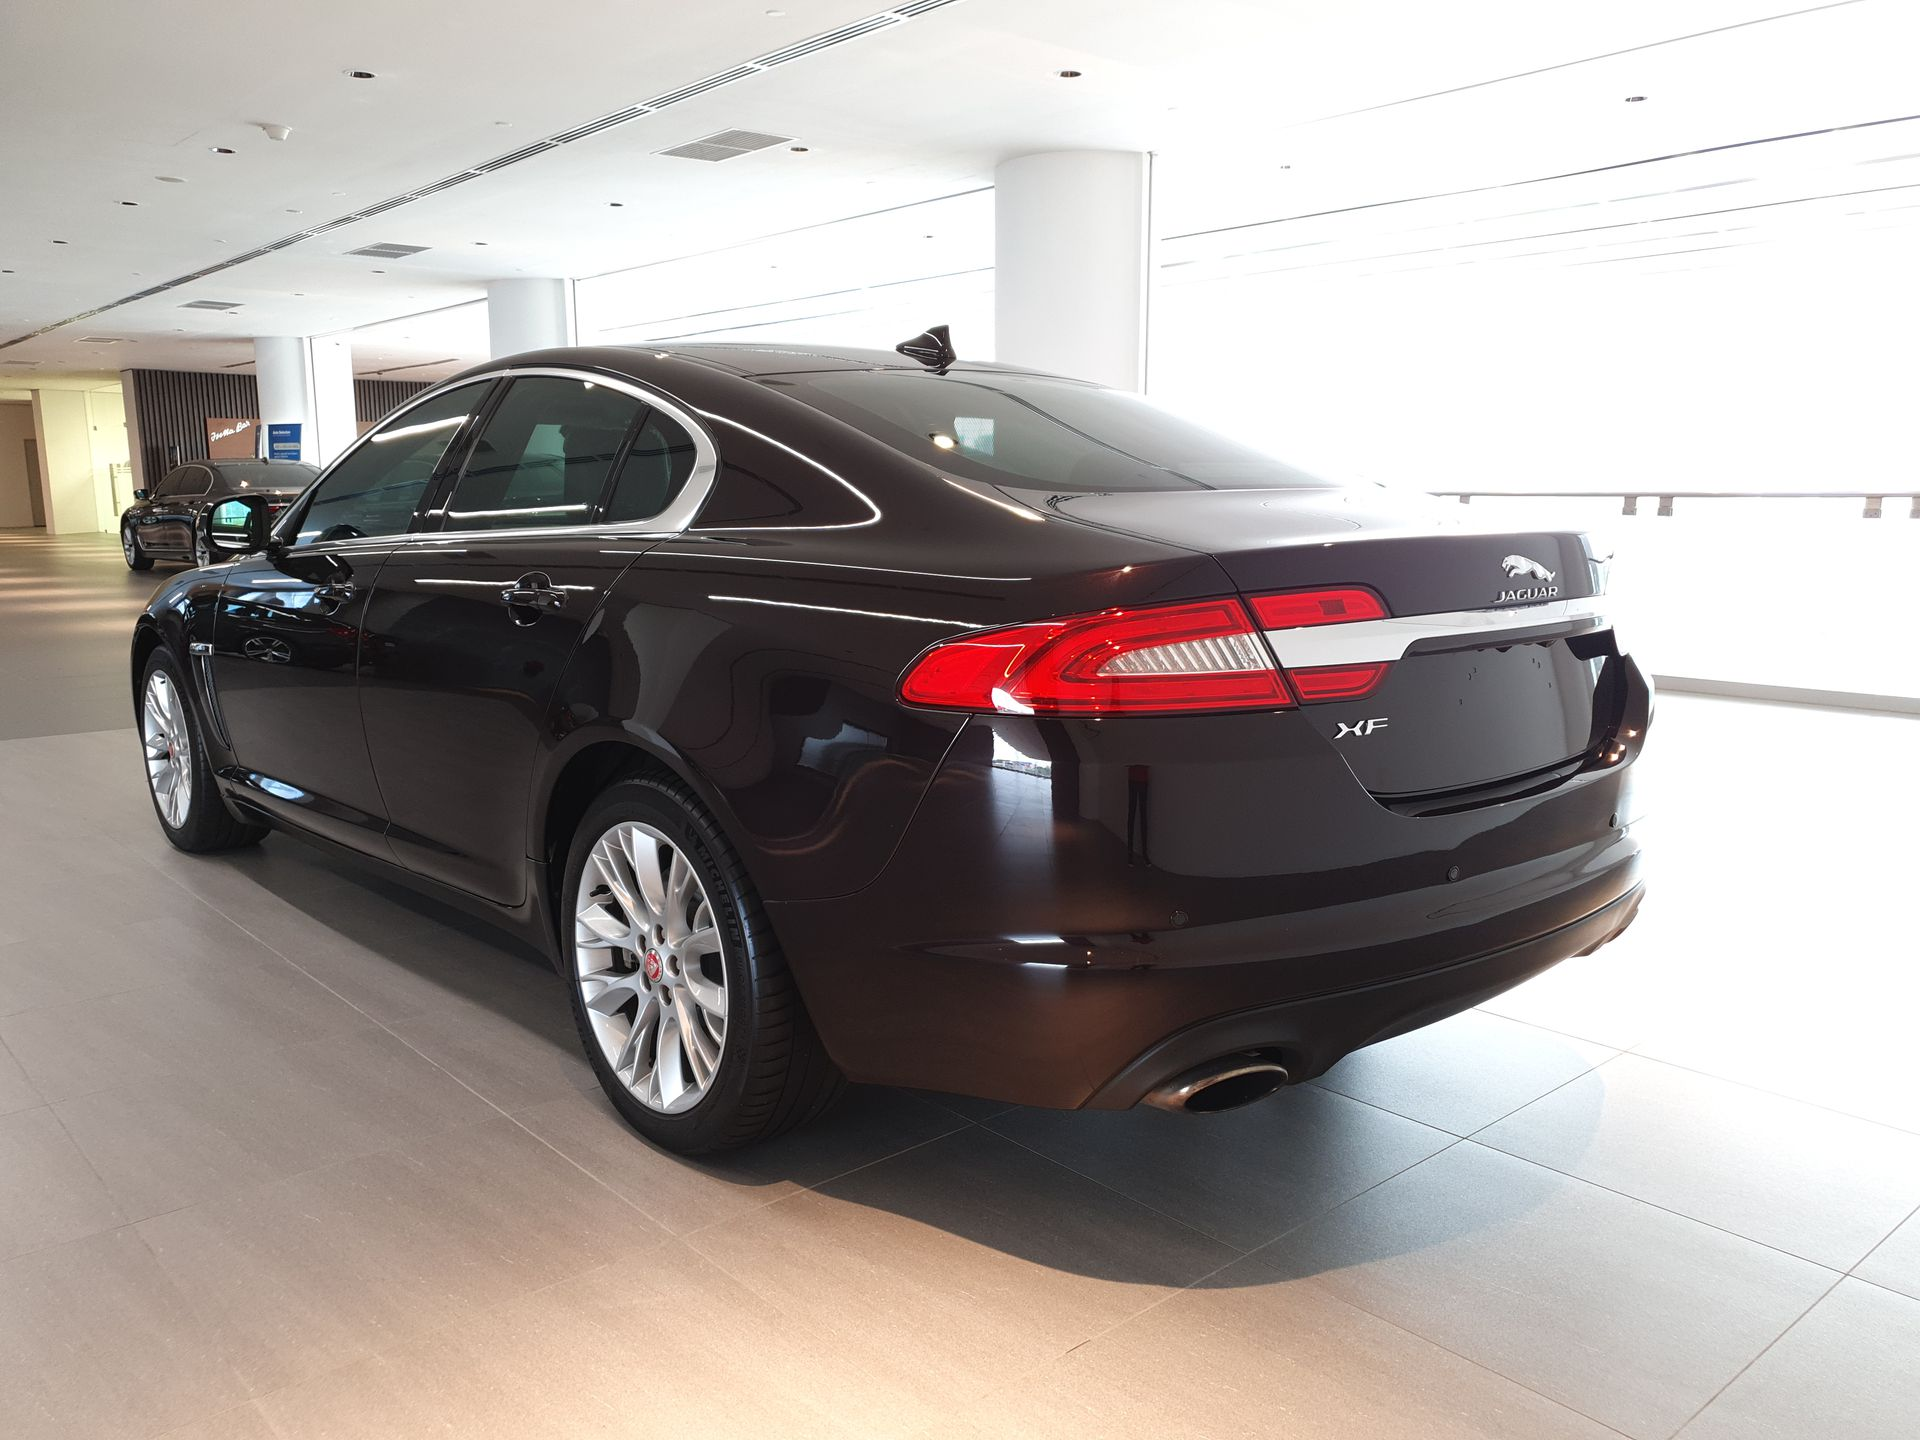 2014 Jaguar XF 2.0 I4 Luxury